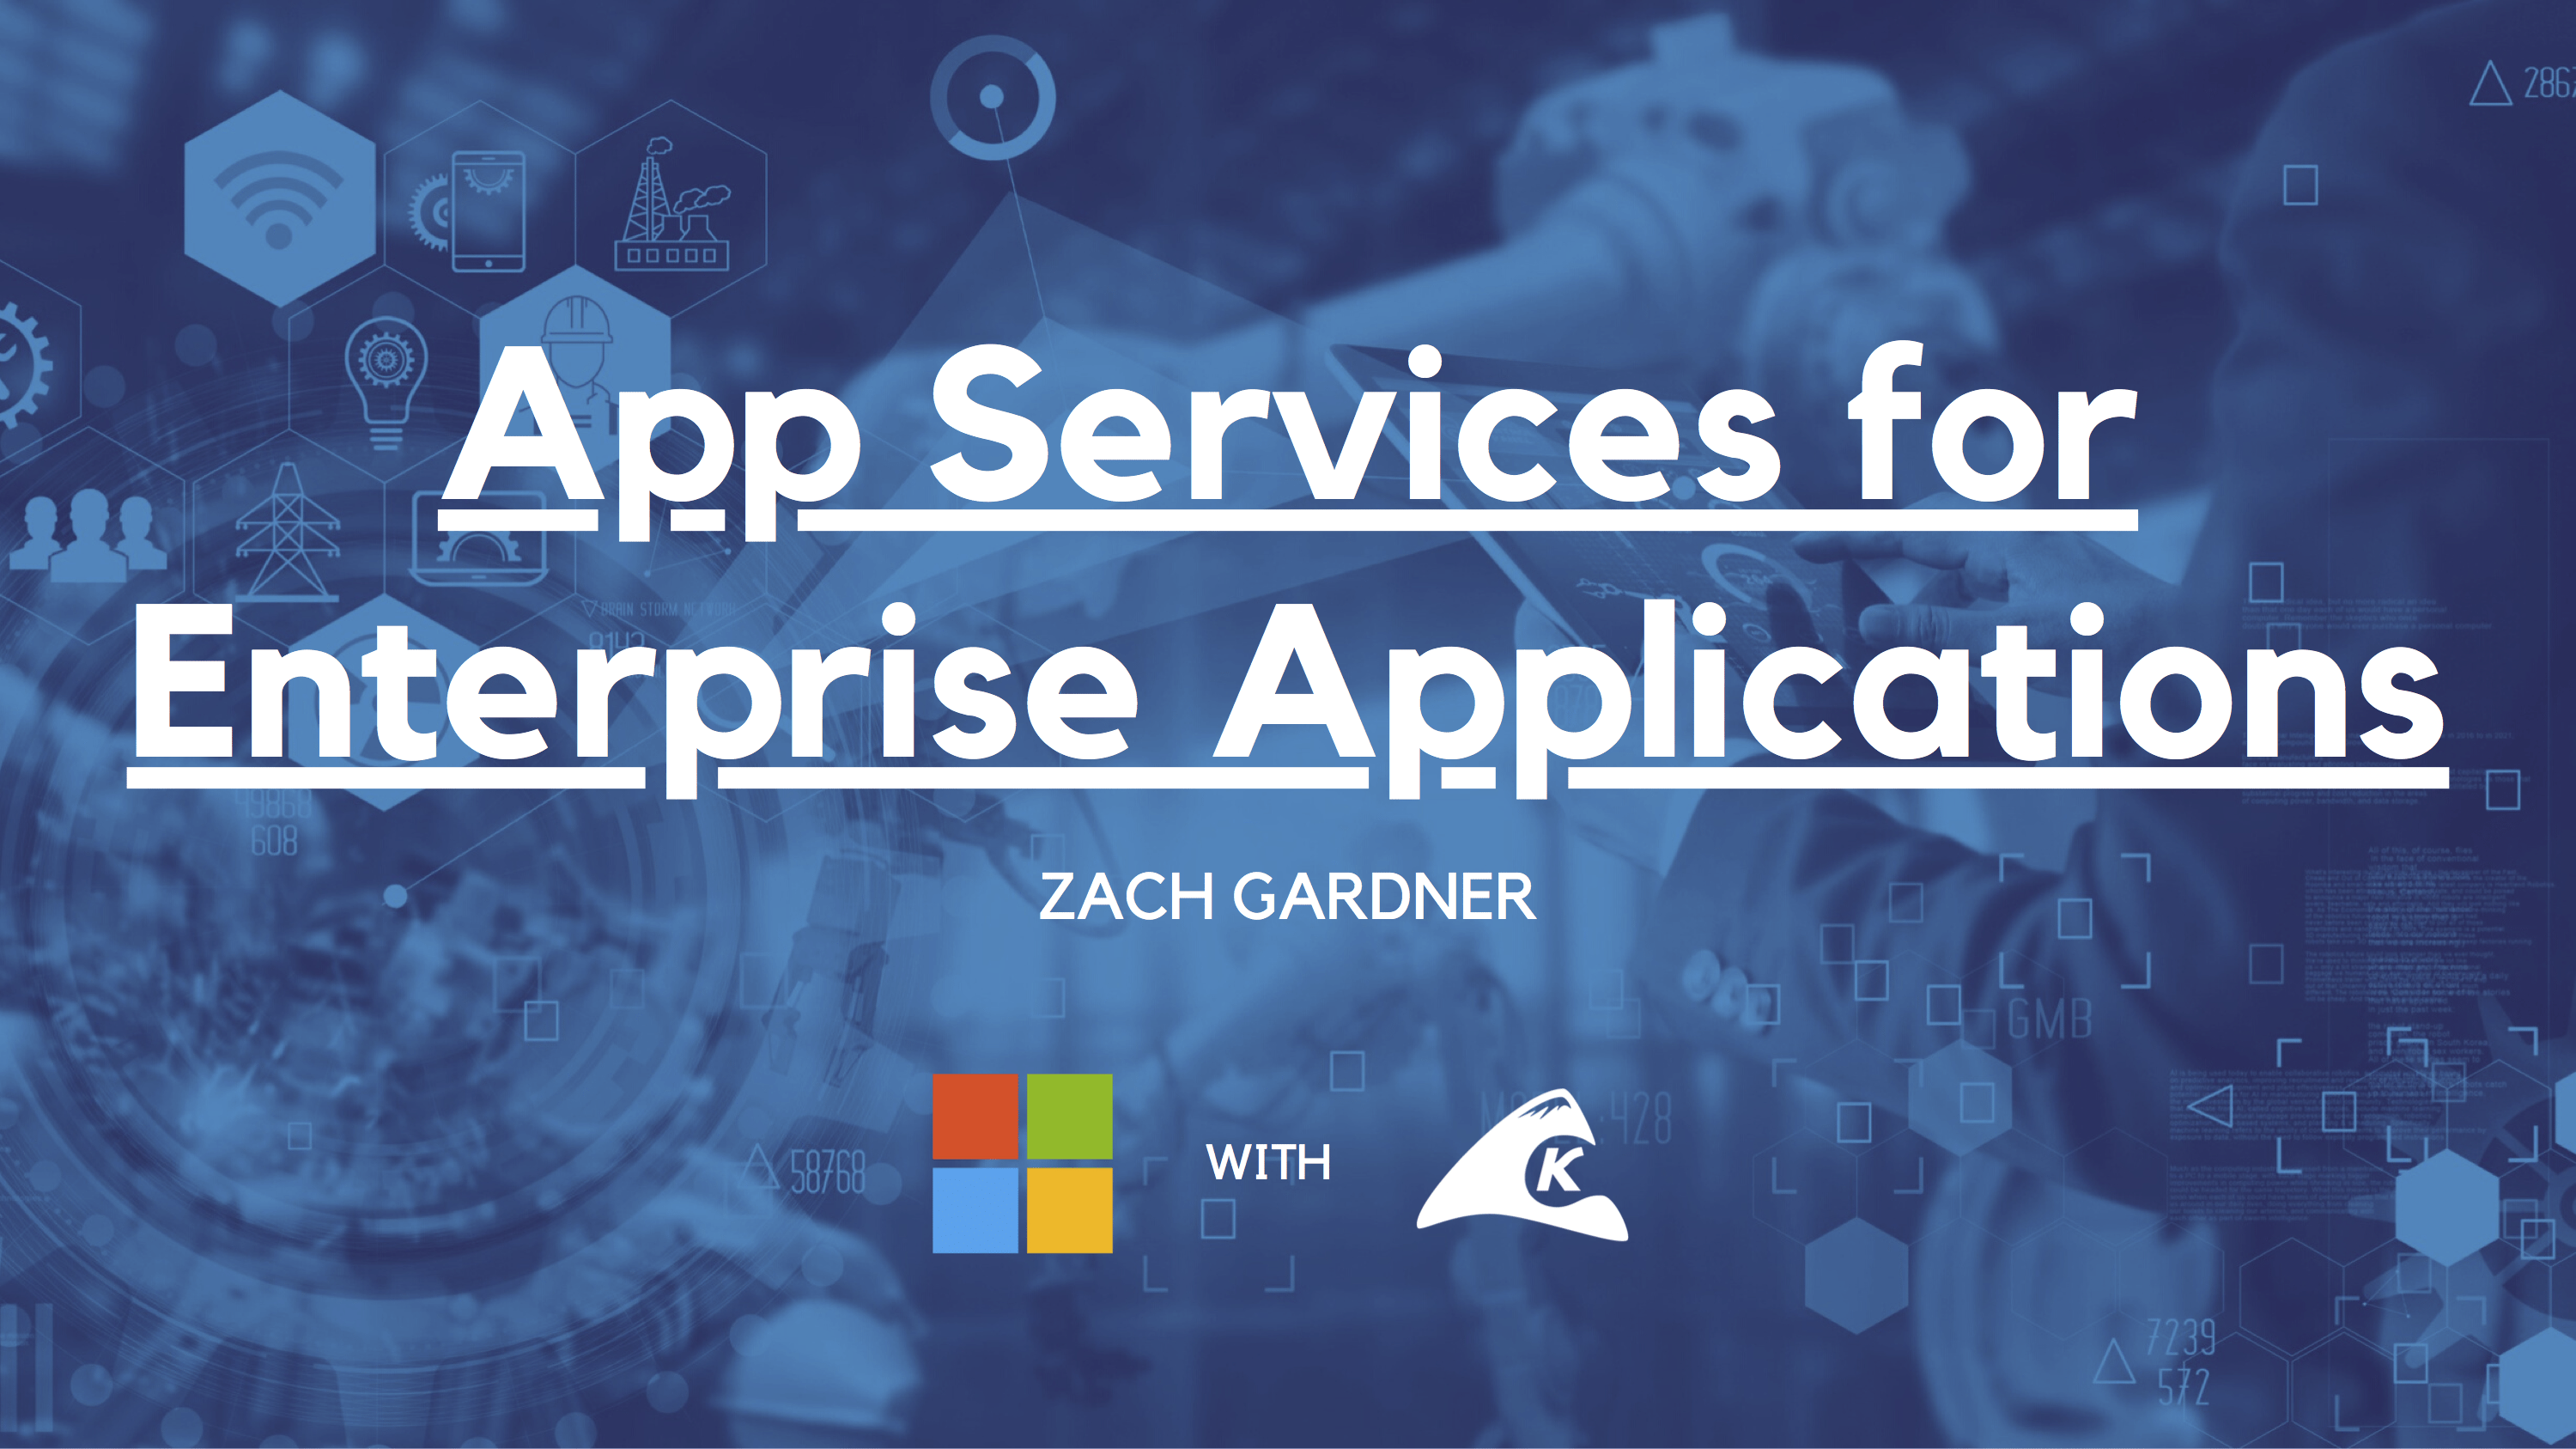 App Services for Enterprise Applications Slides and Notes